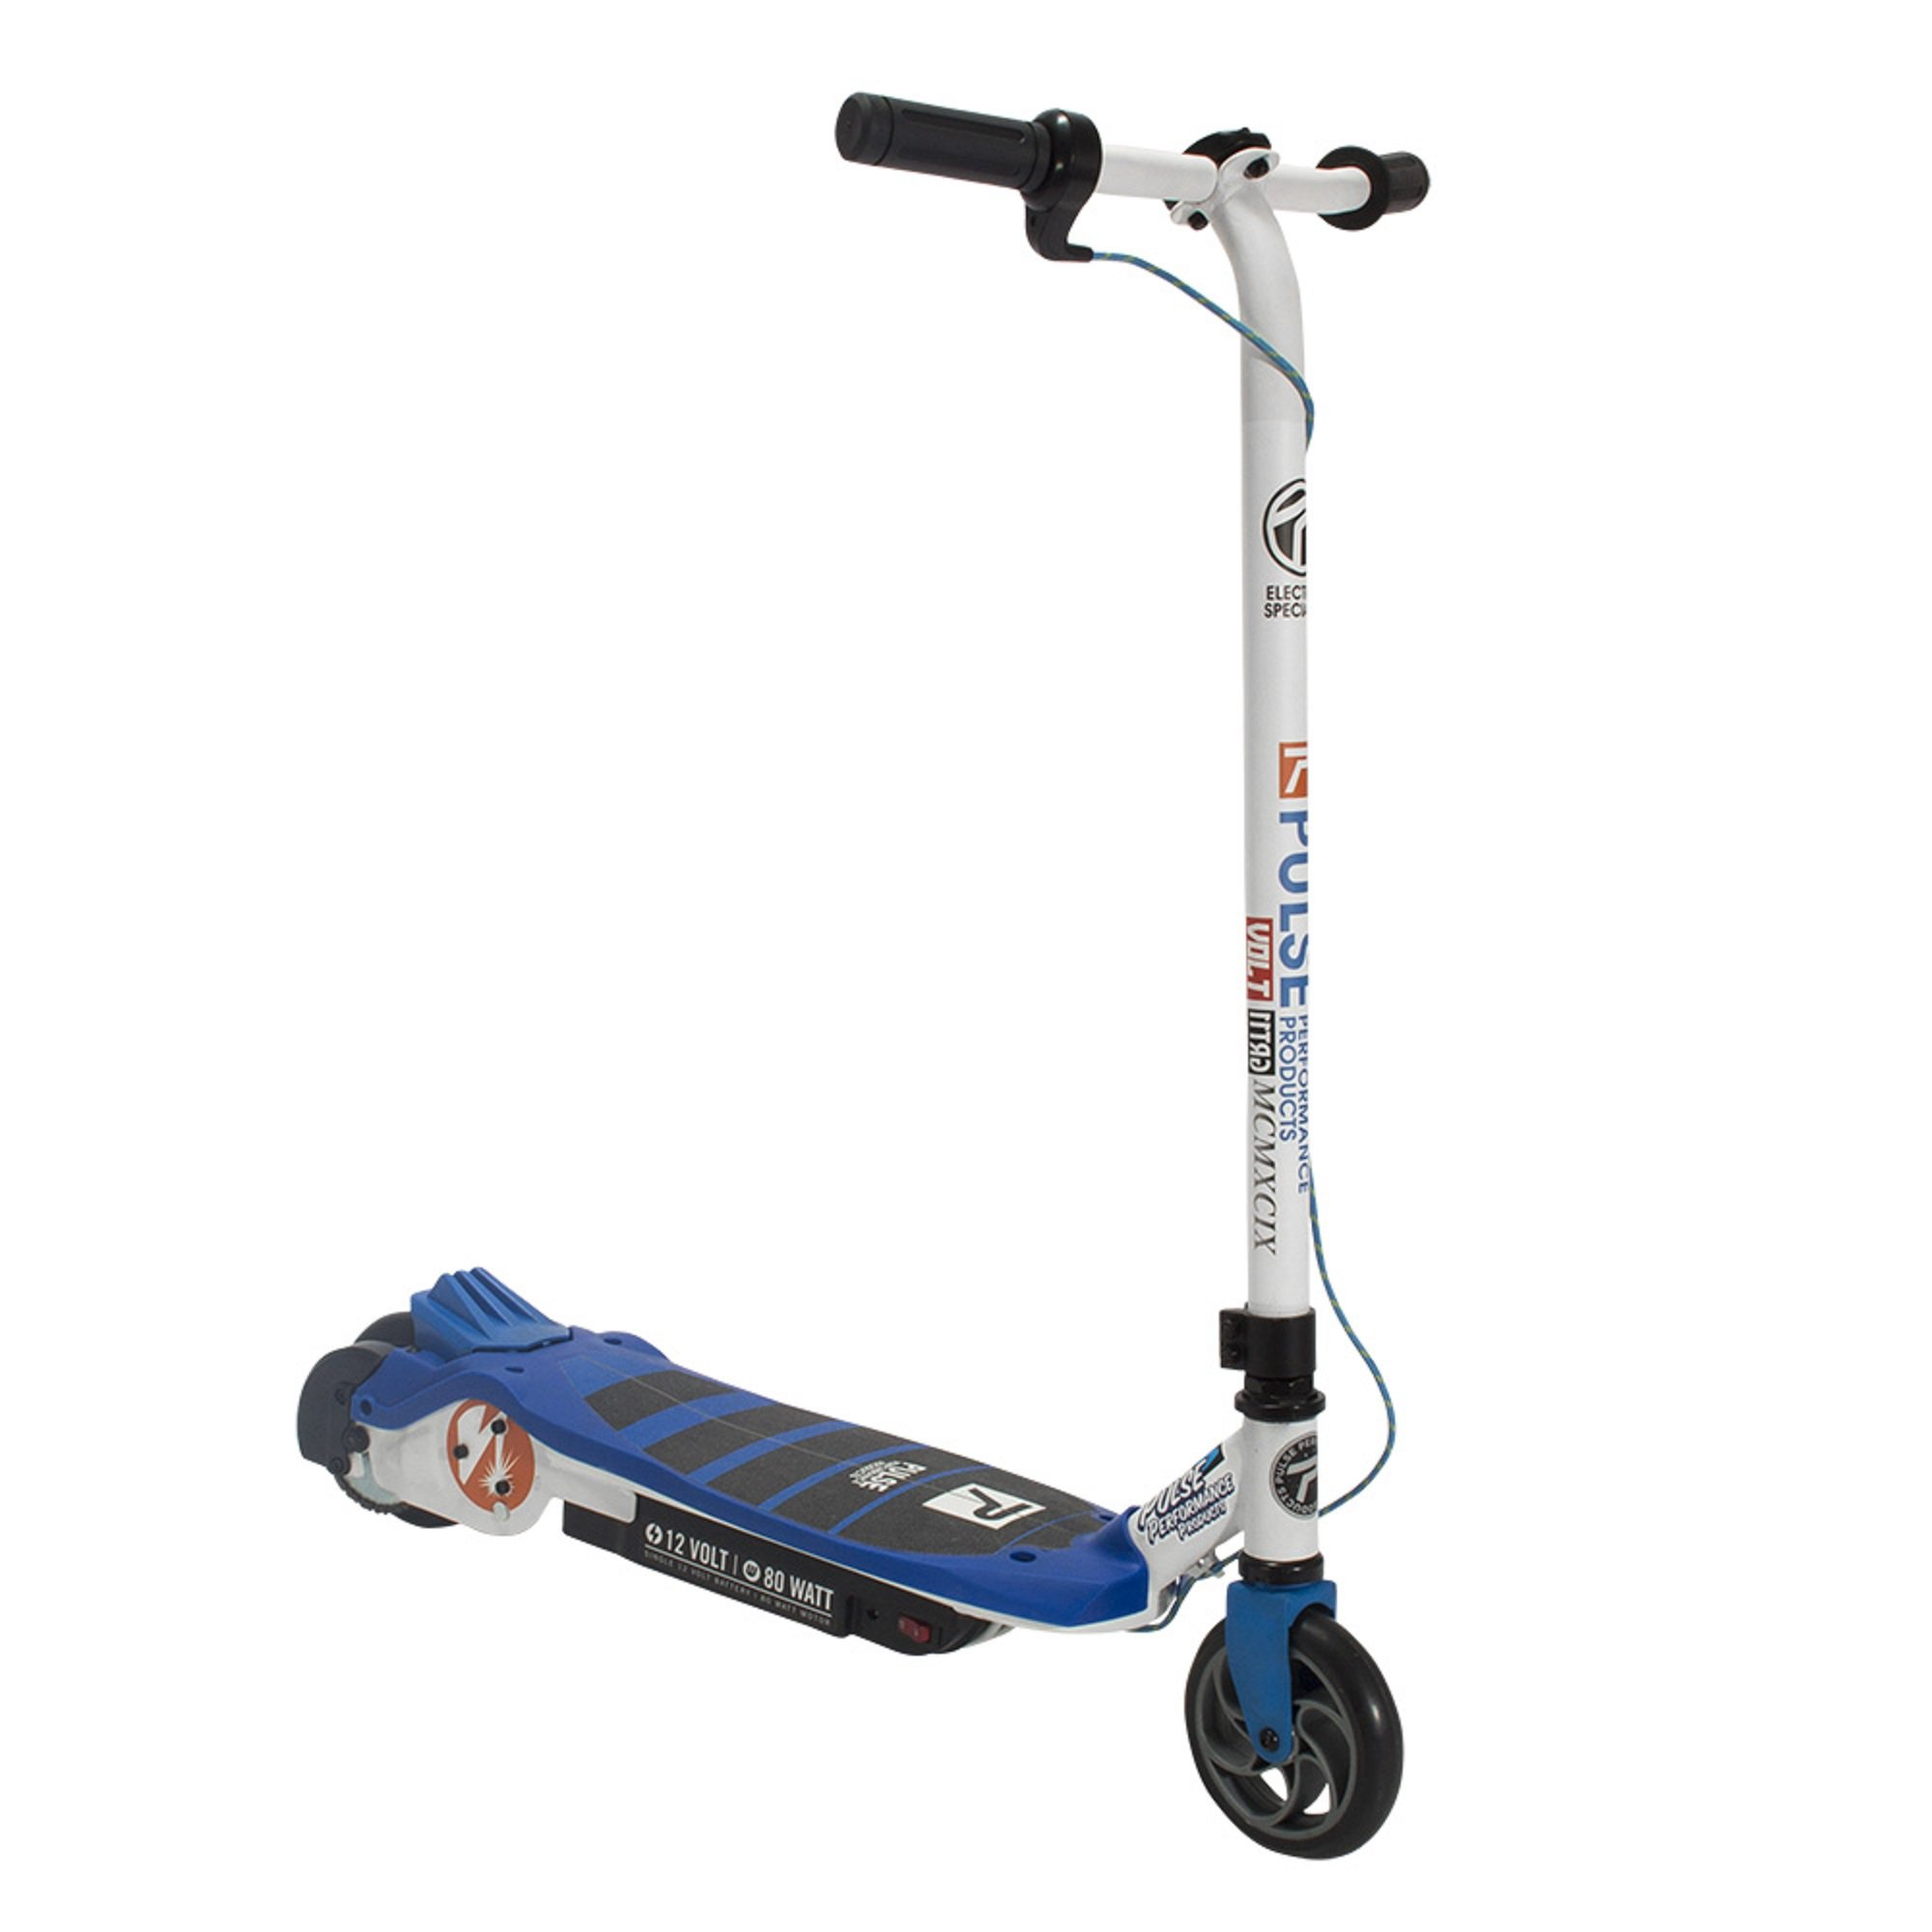 Pulse Performance Products GRT-11 Electric Scooter - 12 Volt Battery-Powered Scooter for Kids - Blue by Pulse Performance Products